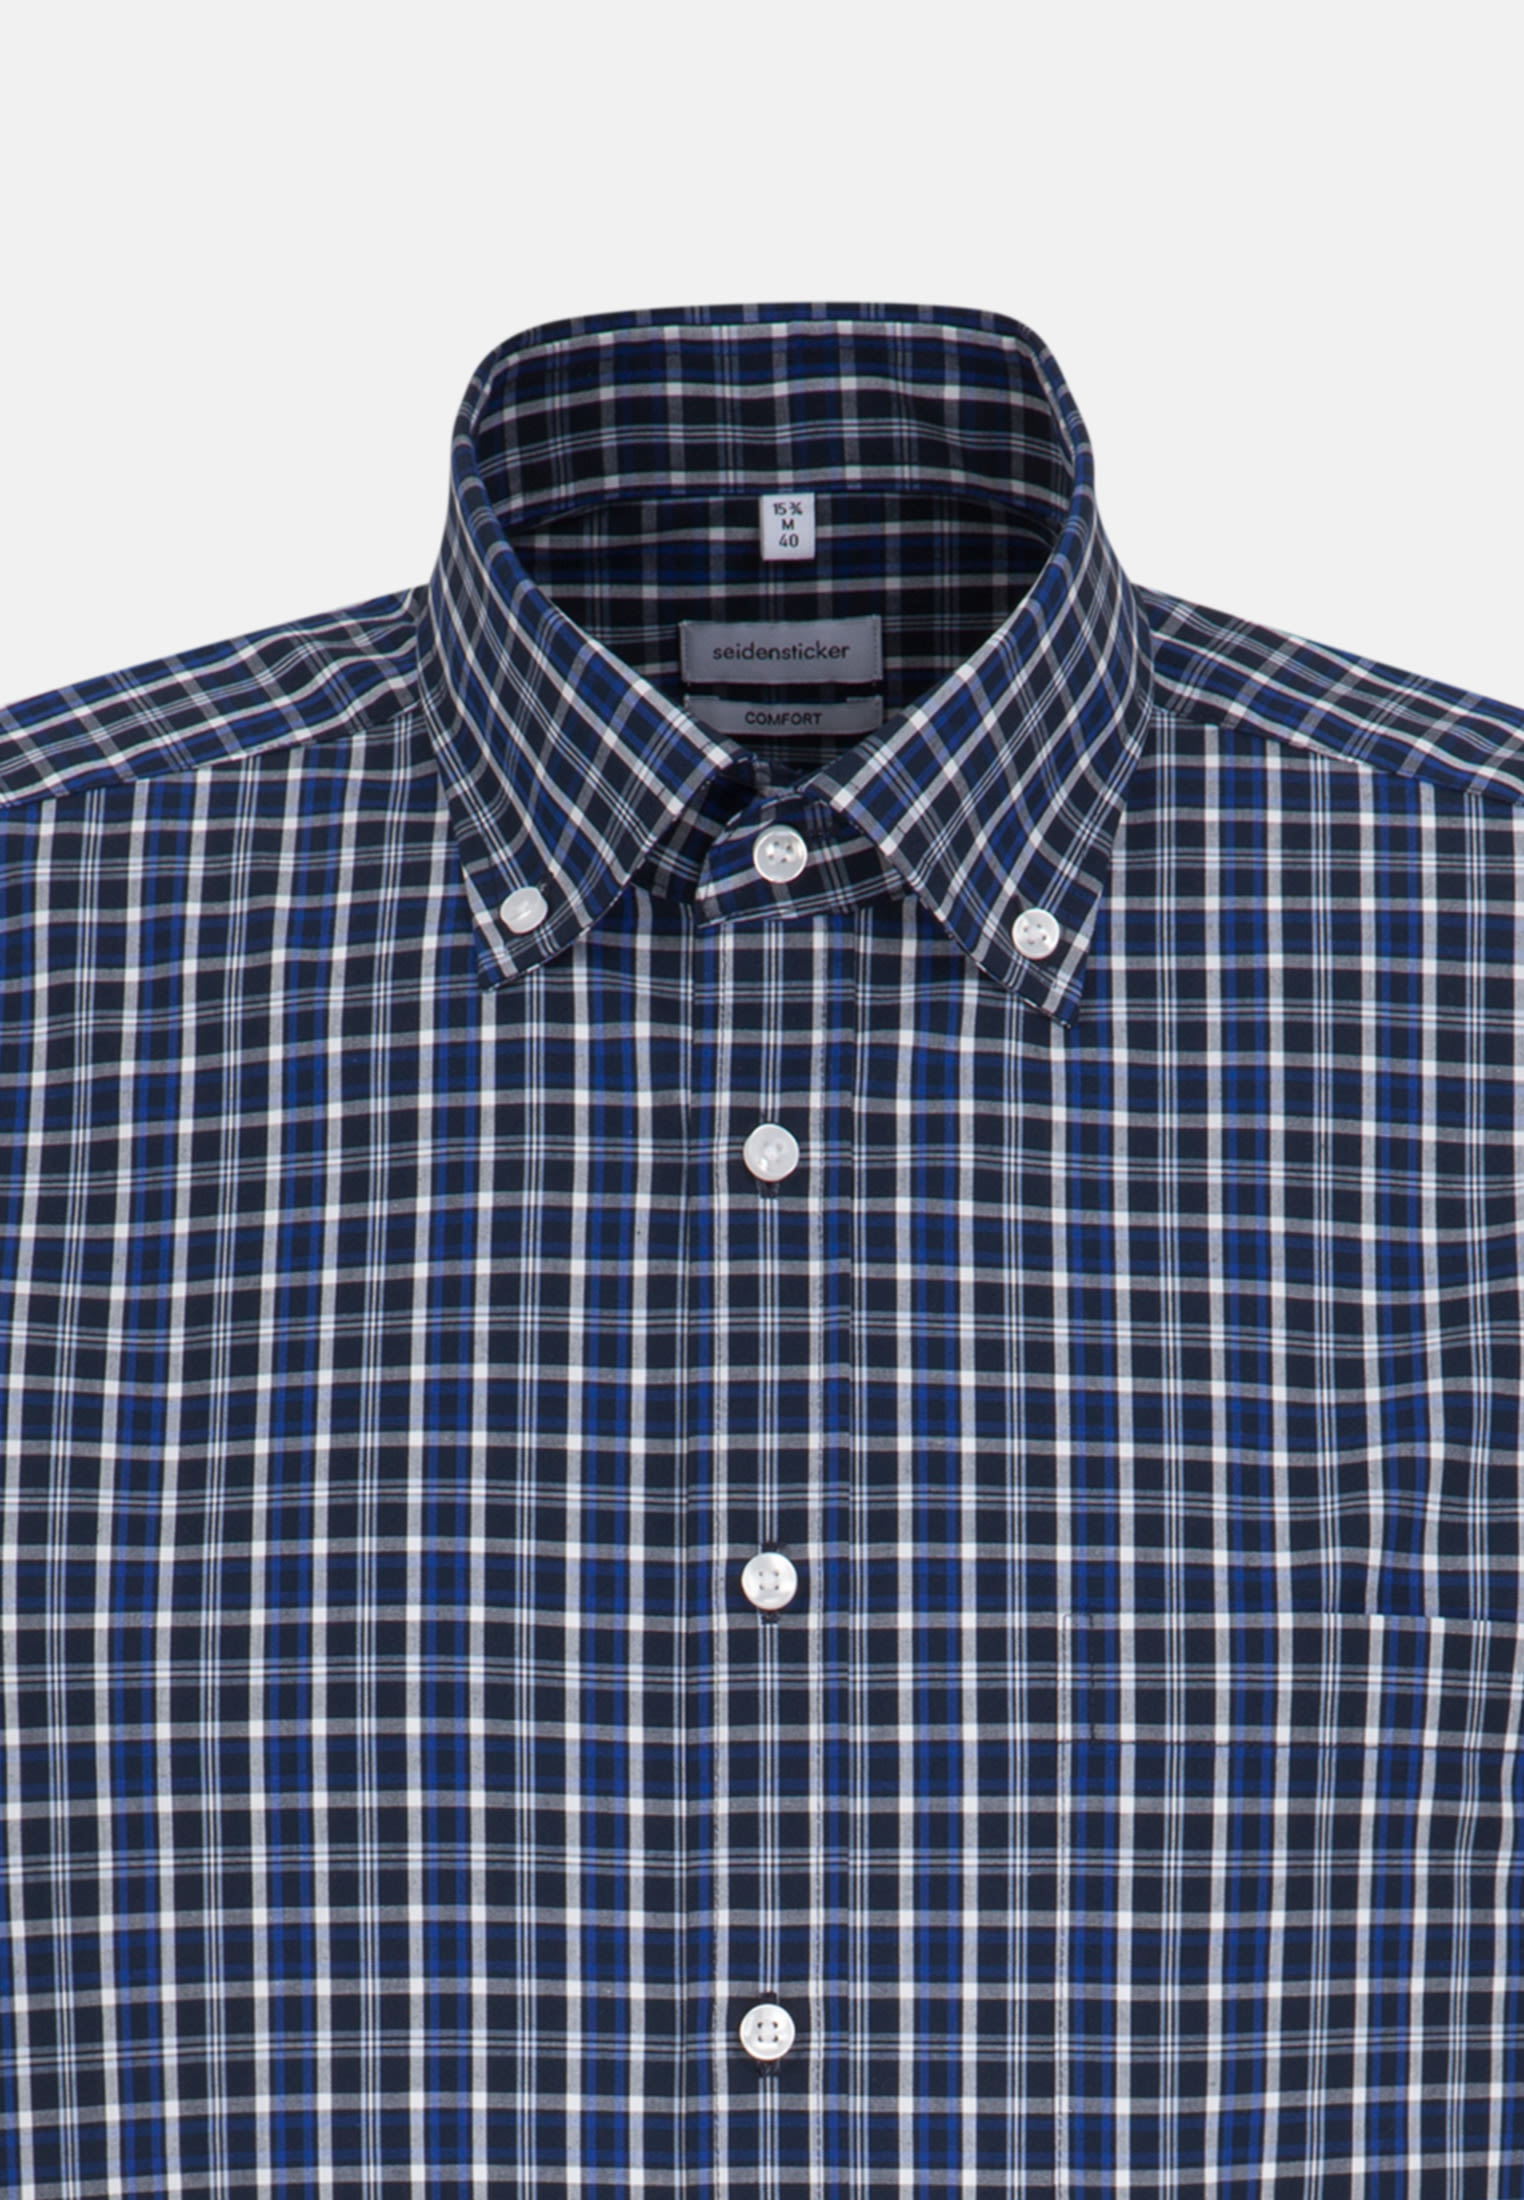 Bügelfreies Popeline Kurzarm Business Hemd in Comfort mit Button-Down-Kragen in Mittelblau |  Seidensticker Onlineshop